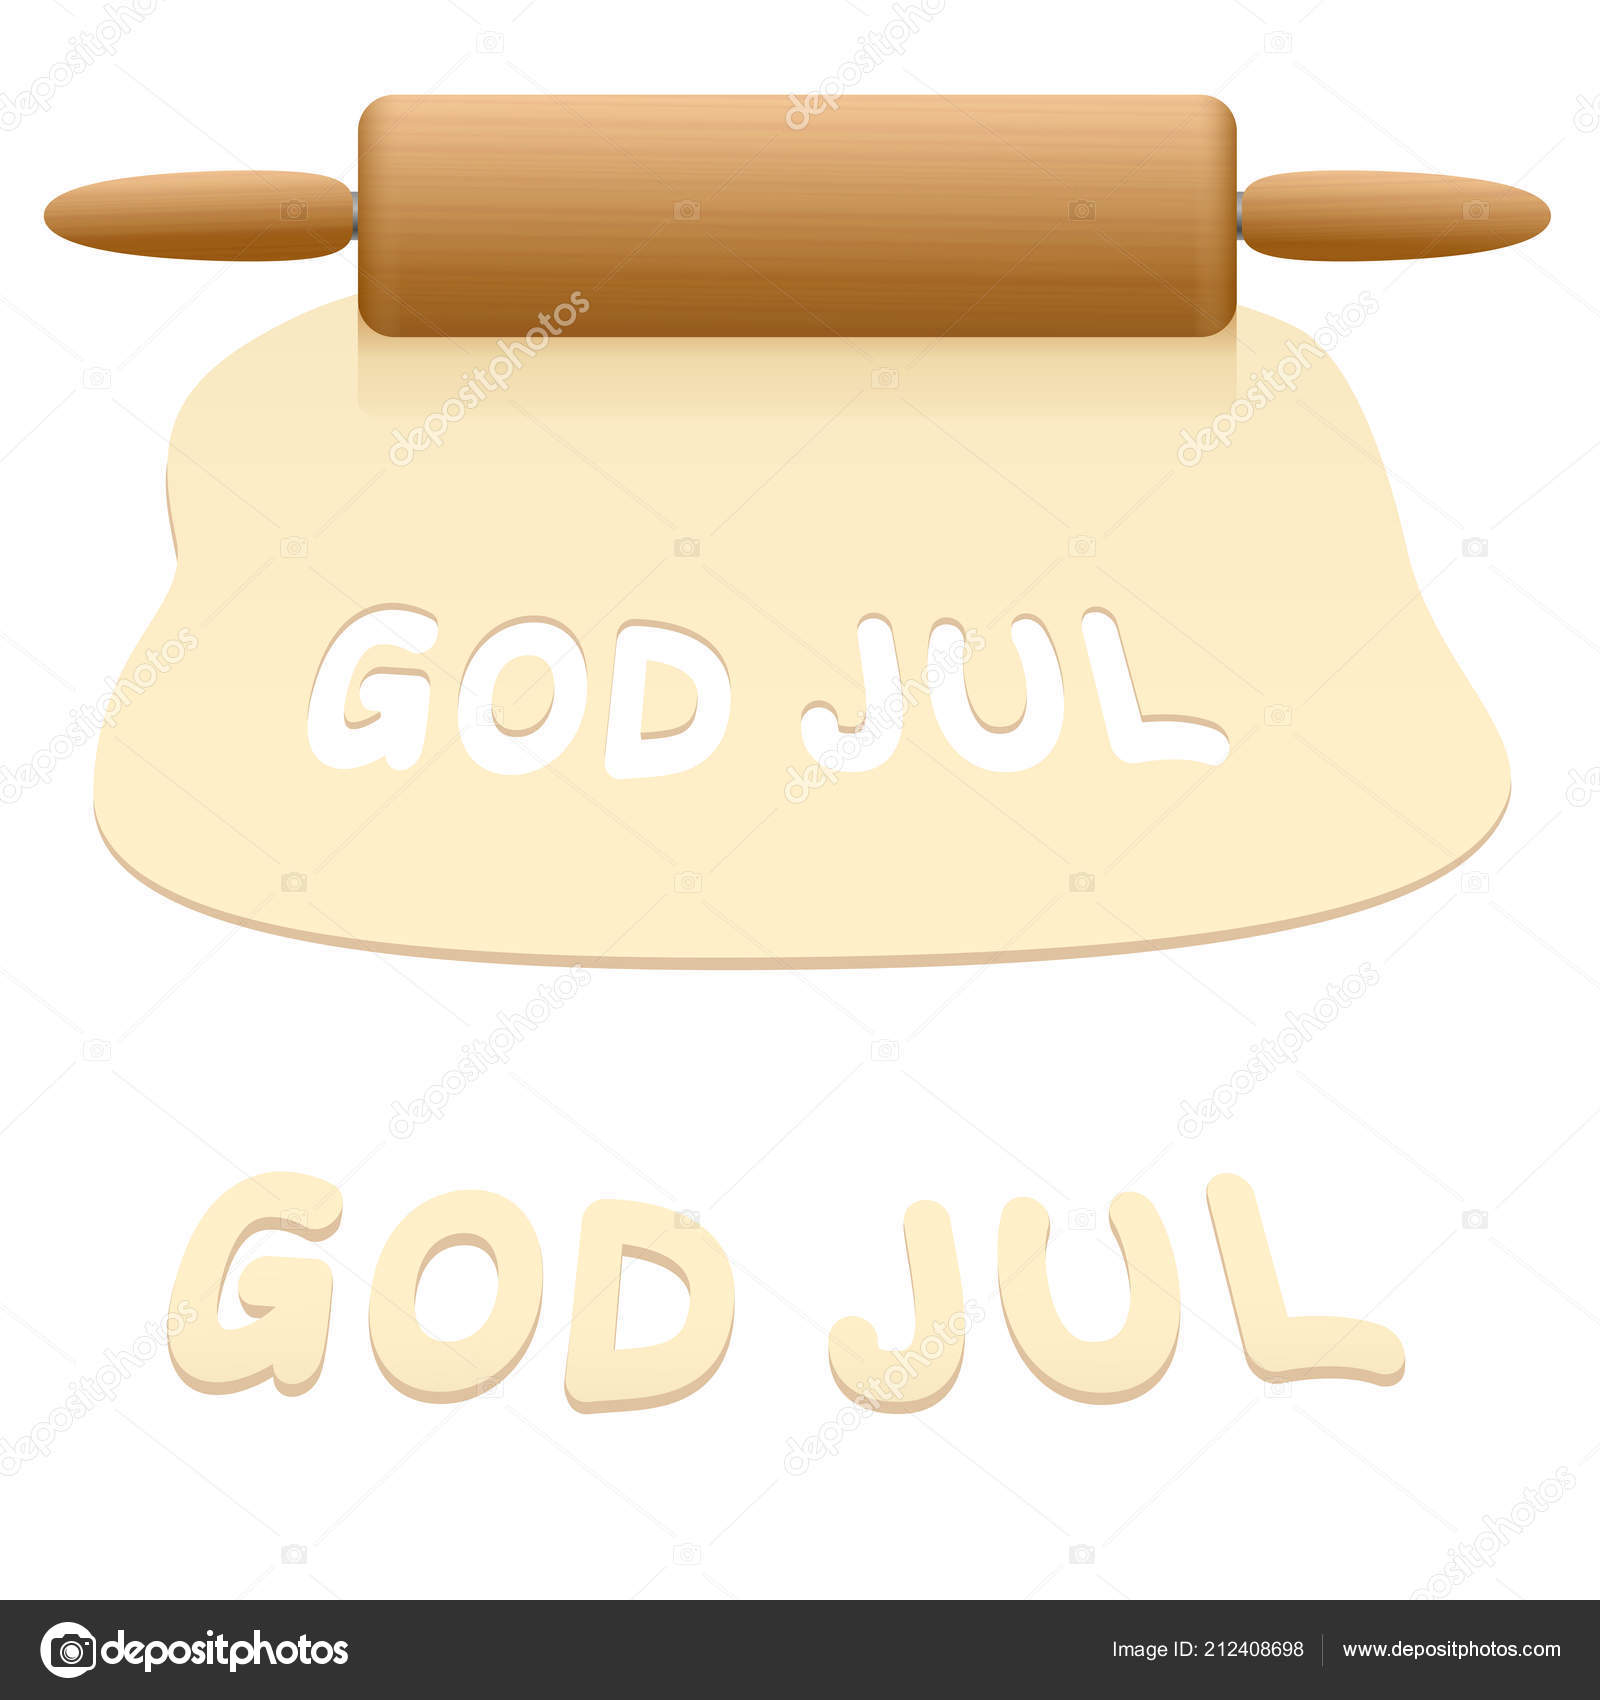 How Do You Say Merry Christmas In Swedish.Merry Christmas Cookies Cut Out Pastry Dough Saying God Jul